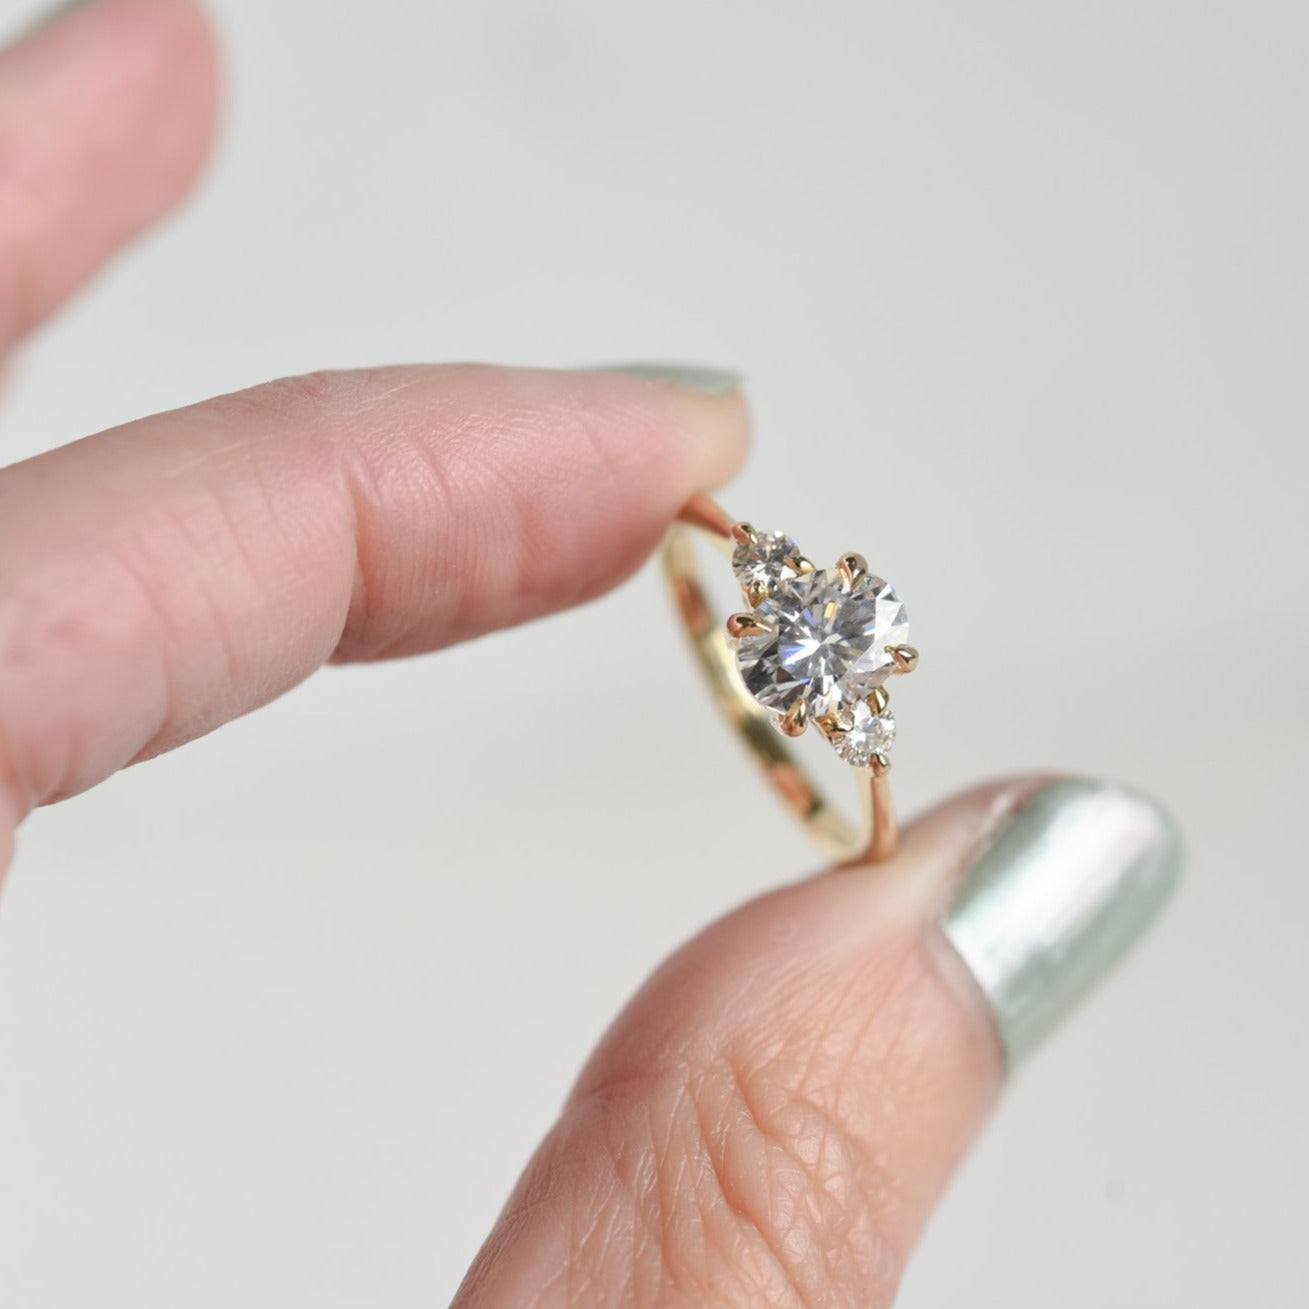 Zara Oval Three Stone Moissanite Engagement Ring in yellow gold